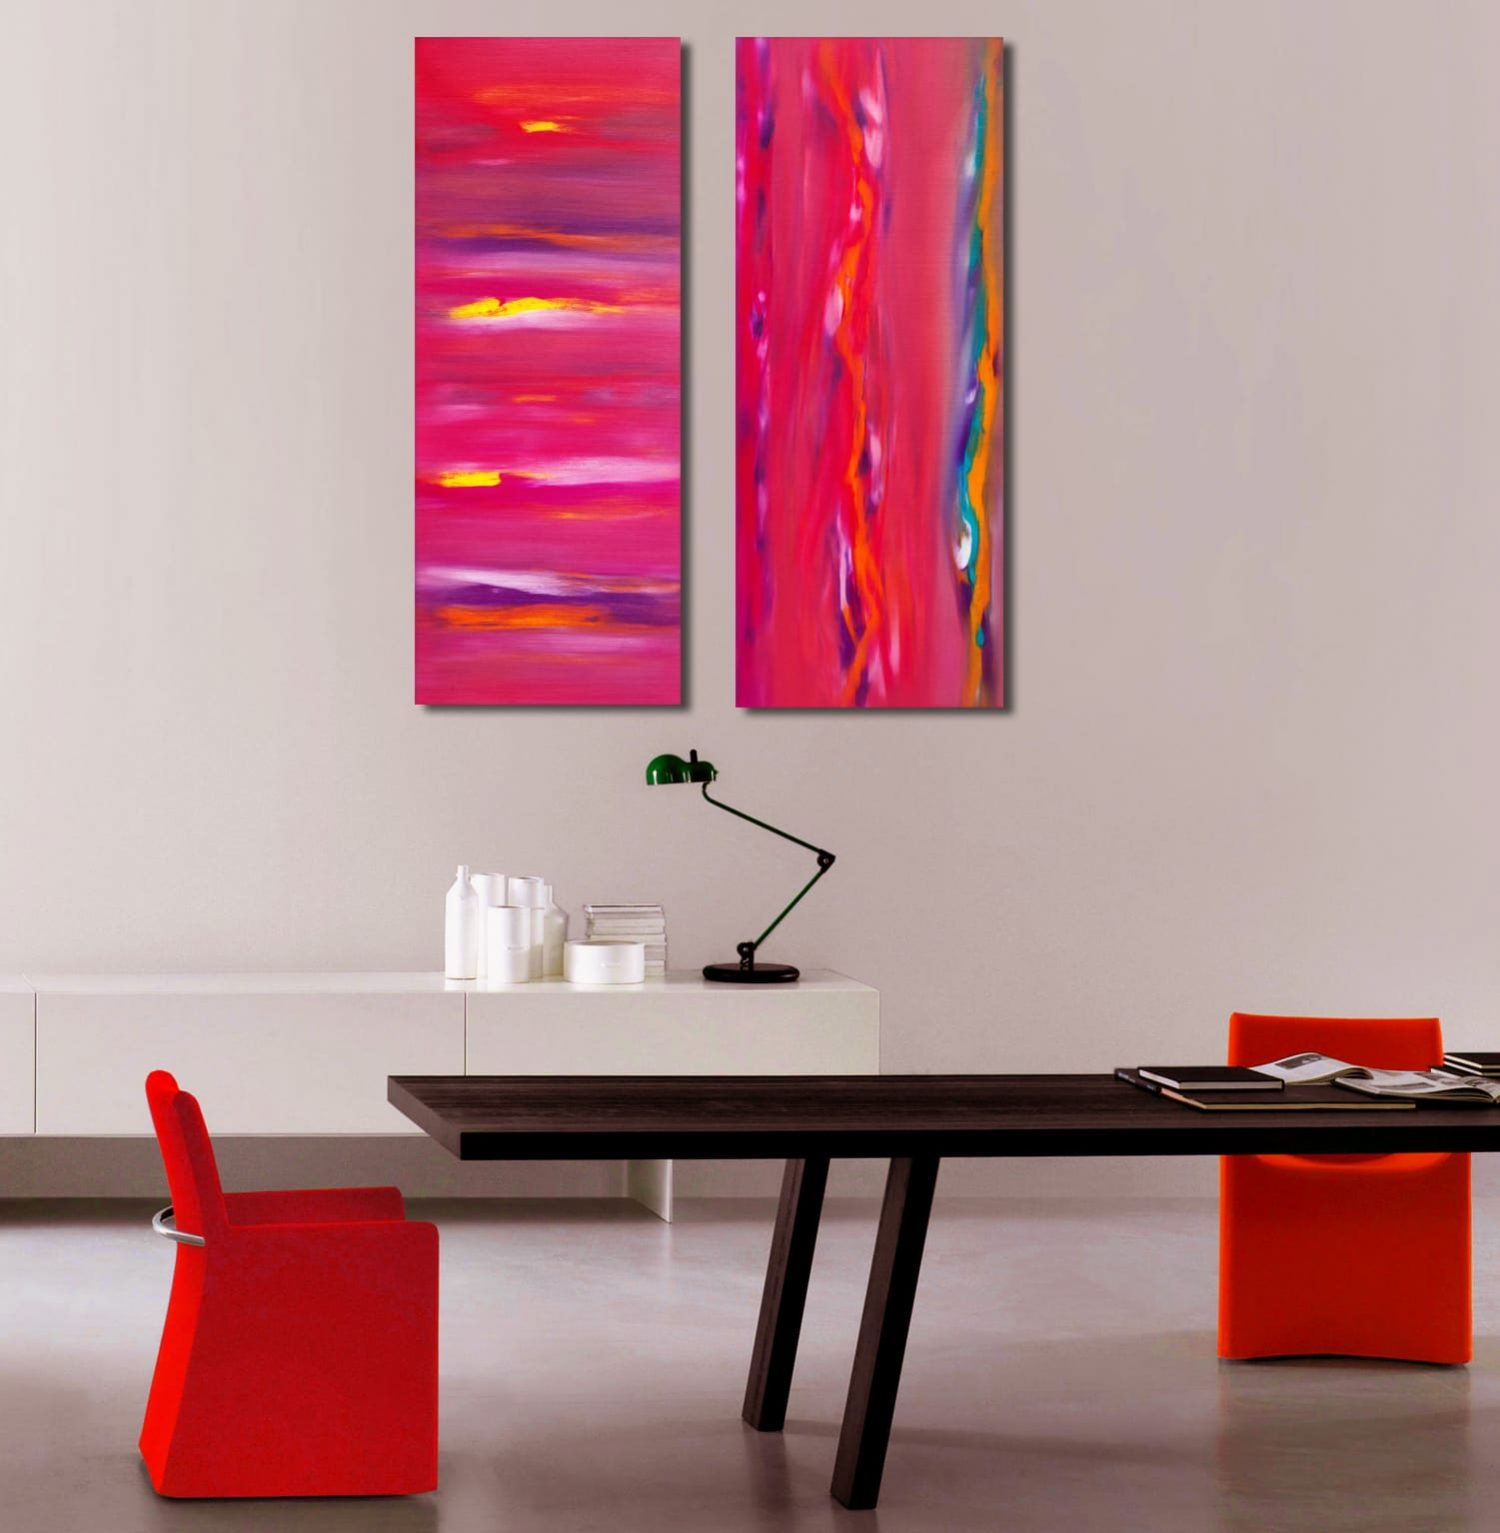 Anomaly sunset Diptych quadro astratto in vendita online